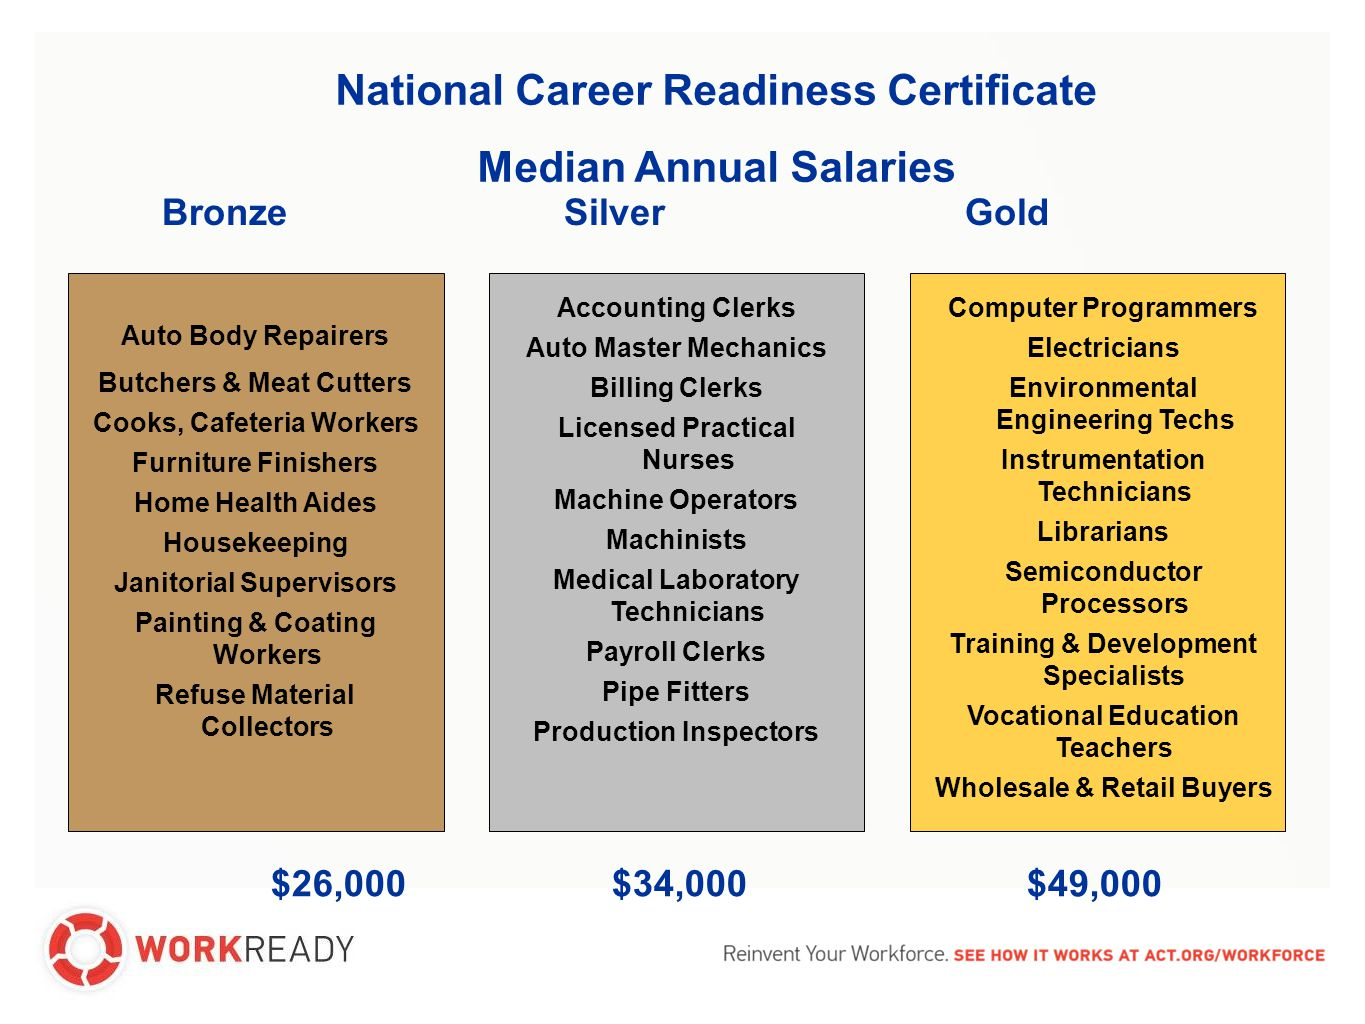 National Career Readiness Certificate Median Annual Salaries Bronze Silver Gold Auto Body Repairers Butchers & Meat Cutters Cooks, Cafeteria Workers Furniture Finishers Home Health Aides Housekeeping Janitorial Supervisors Painting & Coating Workers Refuse Material Collectors Accounting Clerks Auto Master Mechanics Billing Clerks Licensed Practical Nurses Machine Operators Machinists Medical Laboratory Technicians Payroll Clerks Pipe Fitters Production Inspectors Computer Programmers Electricians Environmental Engineering Techs Instrumentation Technicians Librarians Semiconductor Processors Training & Development Specialists Vocational Education Teachers Wholesale & Retail Buyers $26,000 $34,000 $49,000